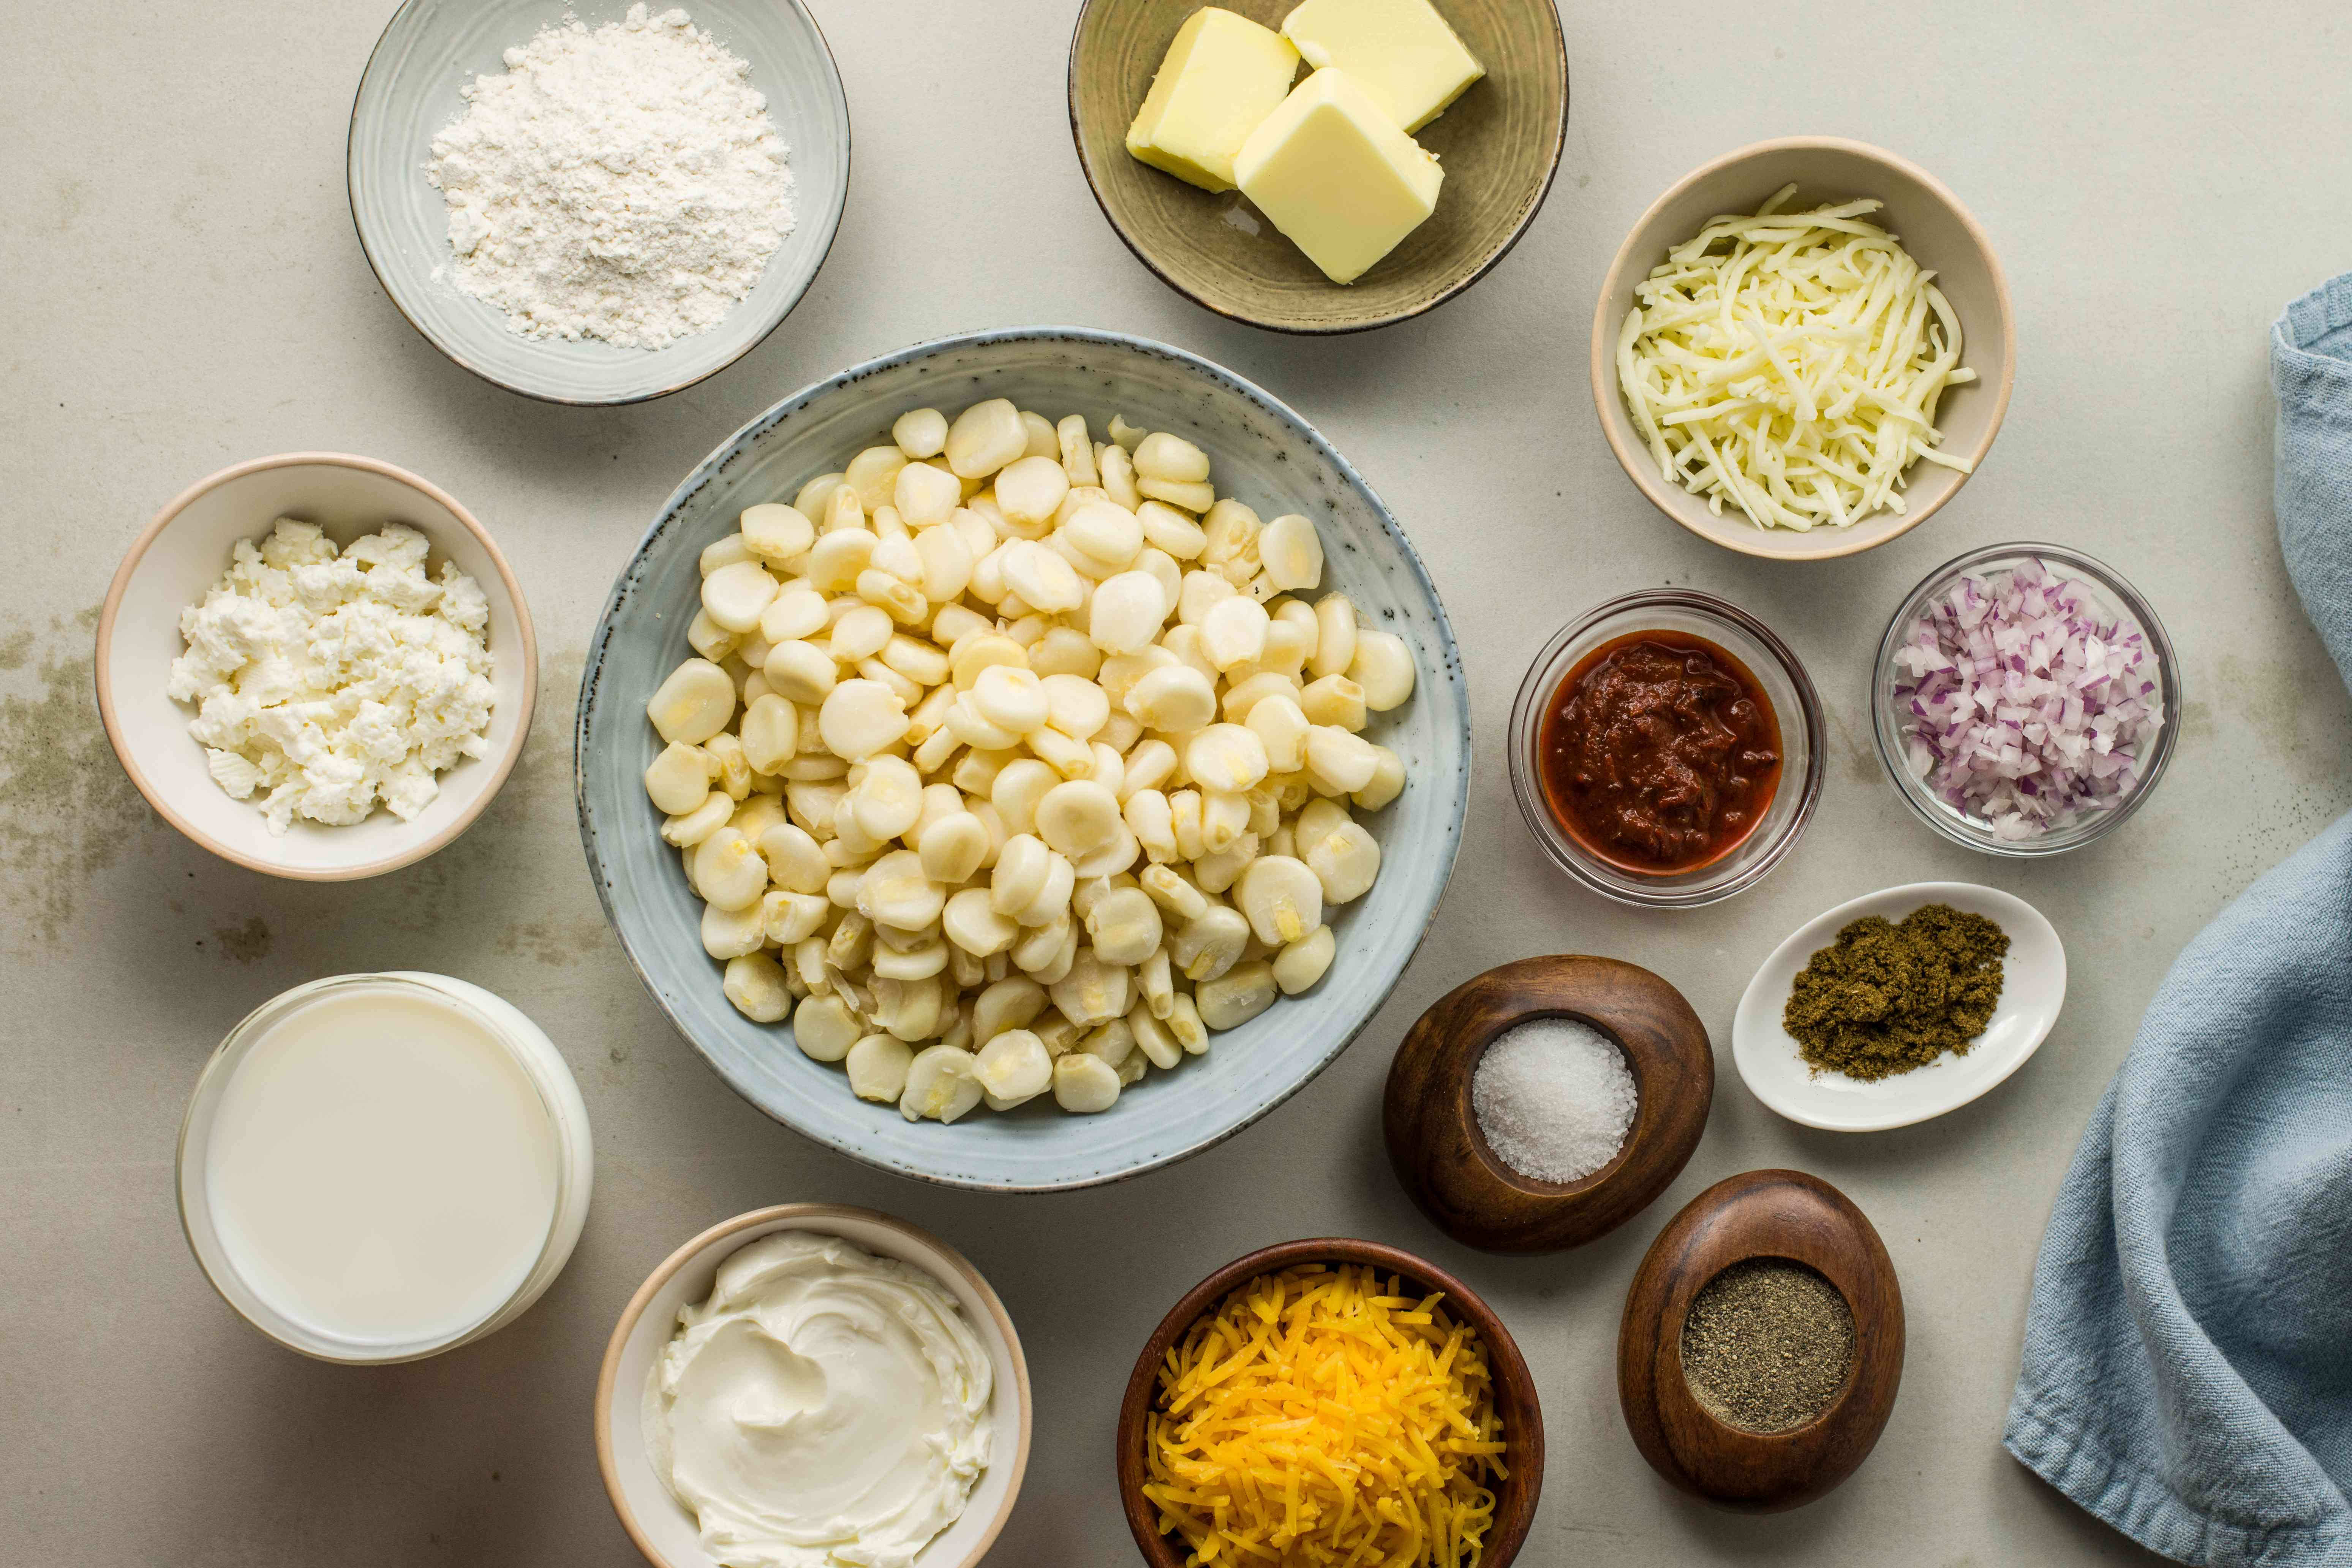 Ingredients for choclo con queso